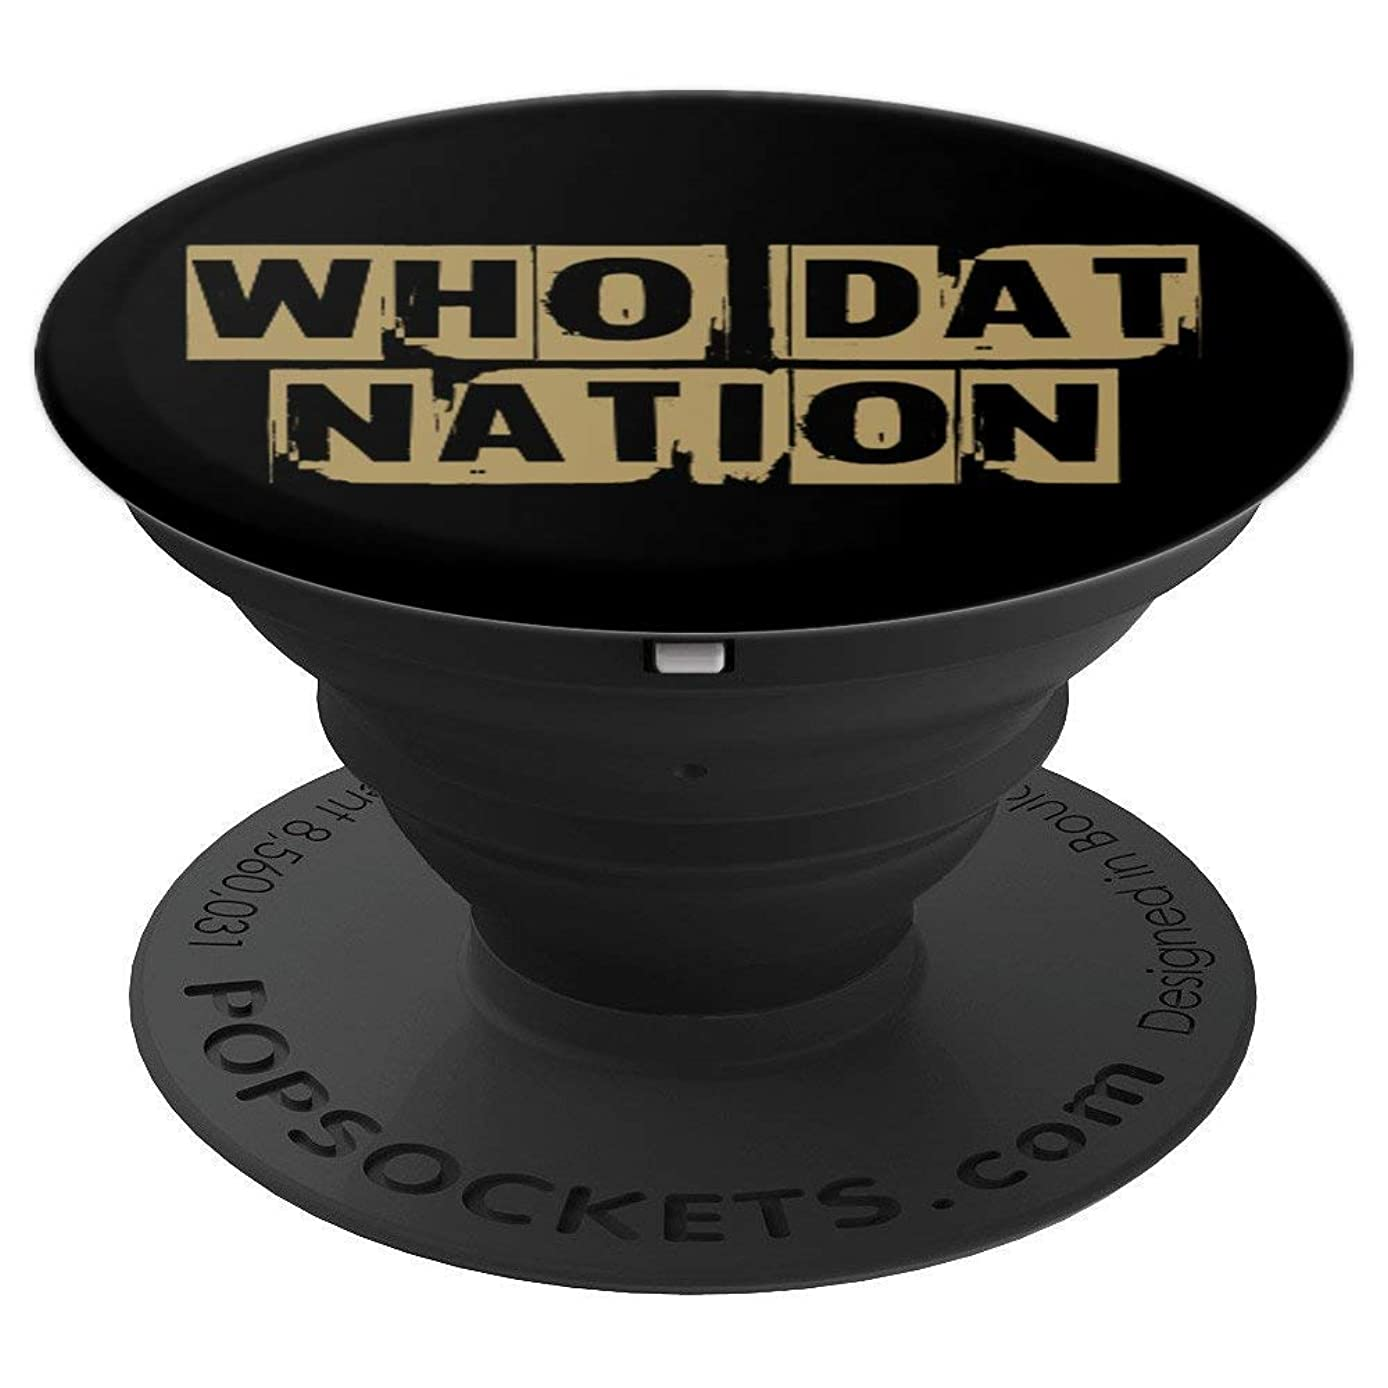 New Orleans Football - PopSockets Grip and Stand for Phones and Tablets